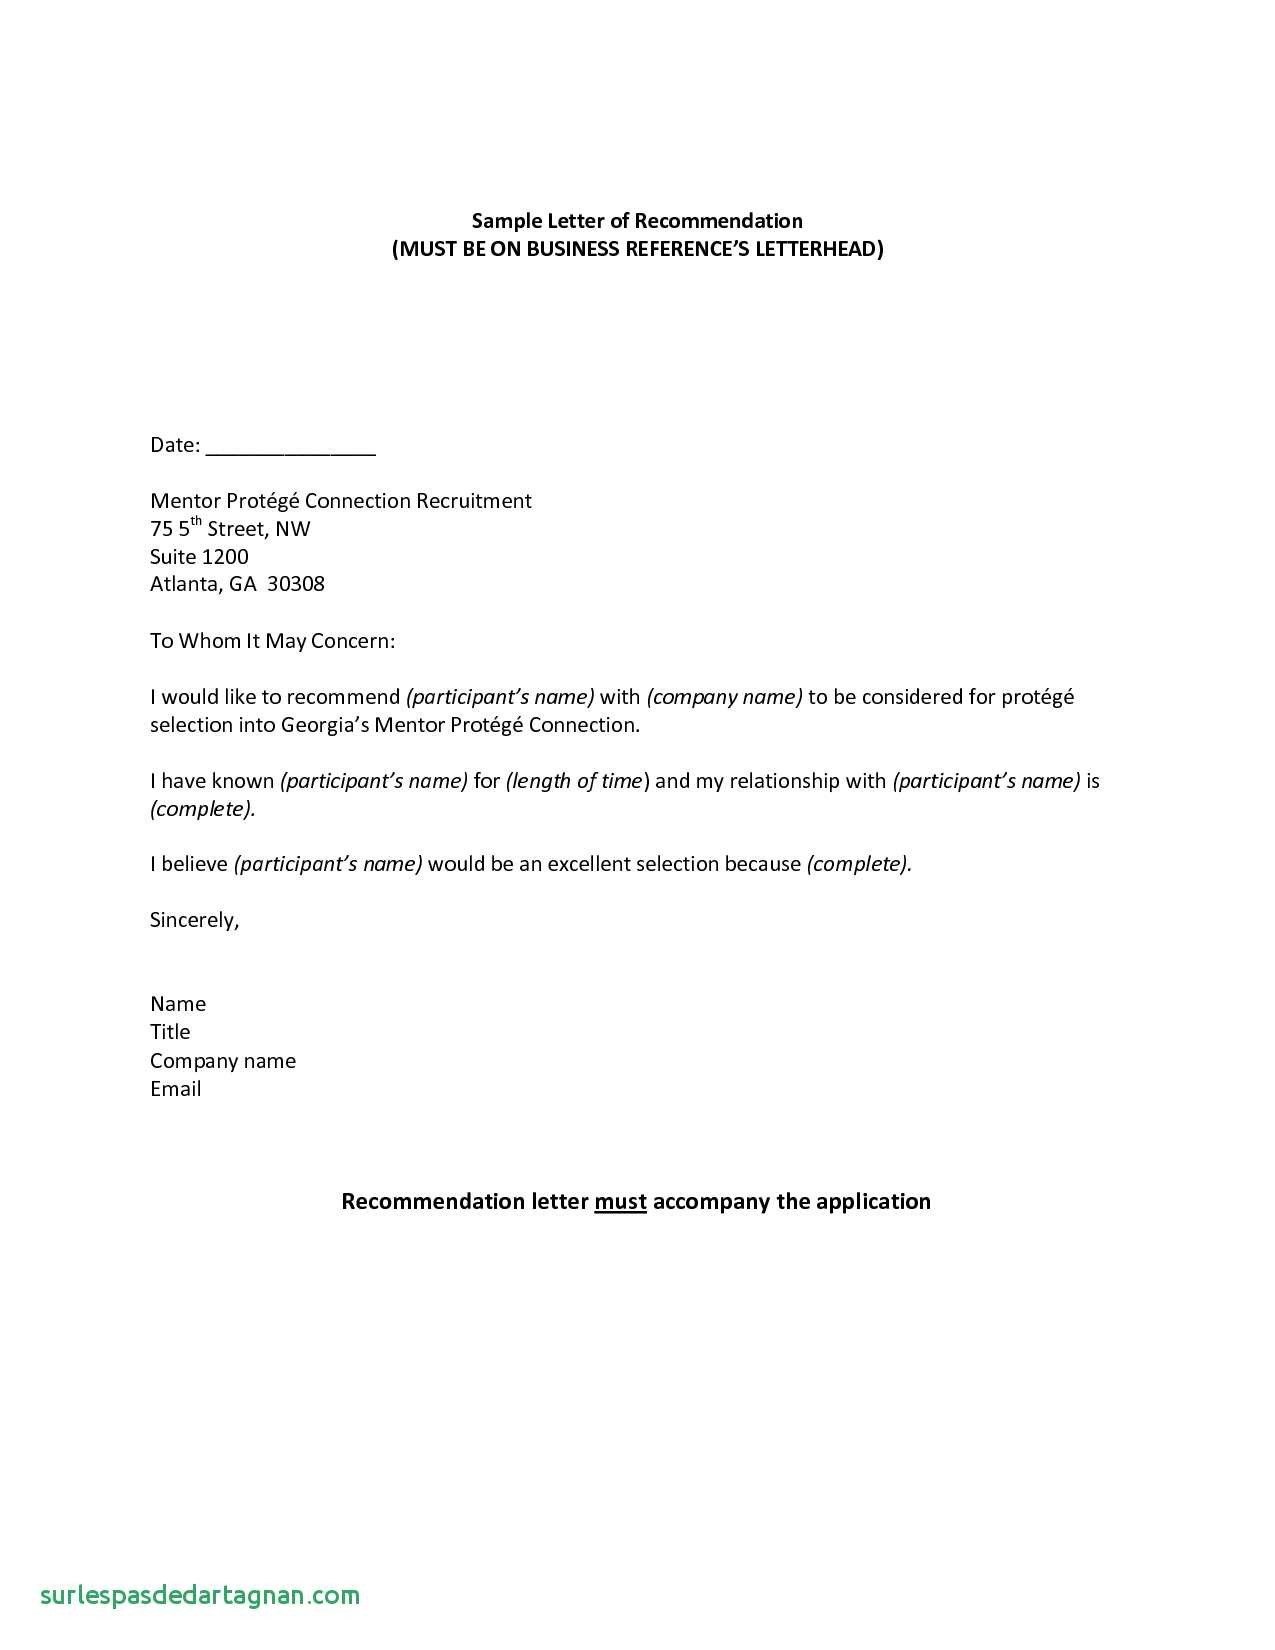 business reference letter template word business re mendation letter template save 31 new reference letter